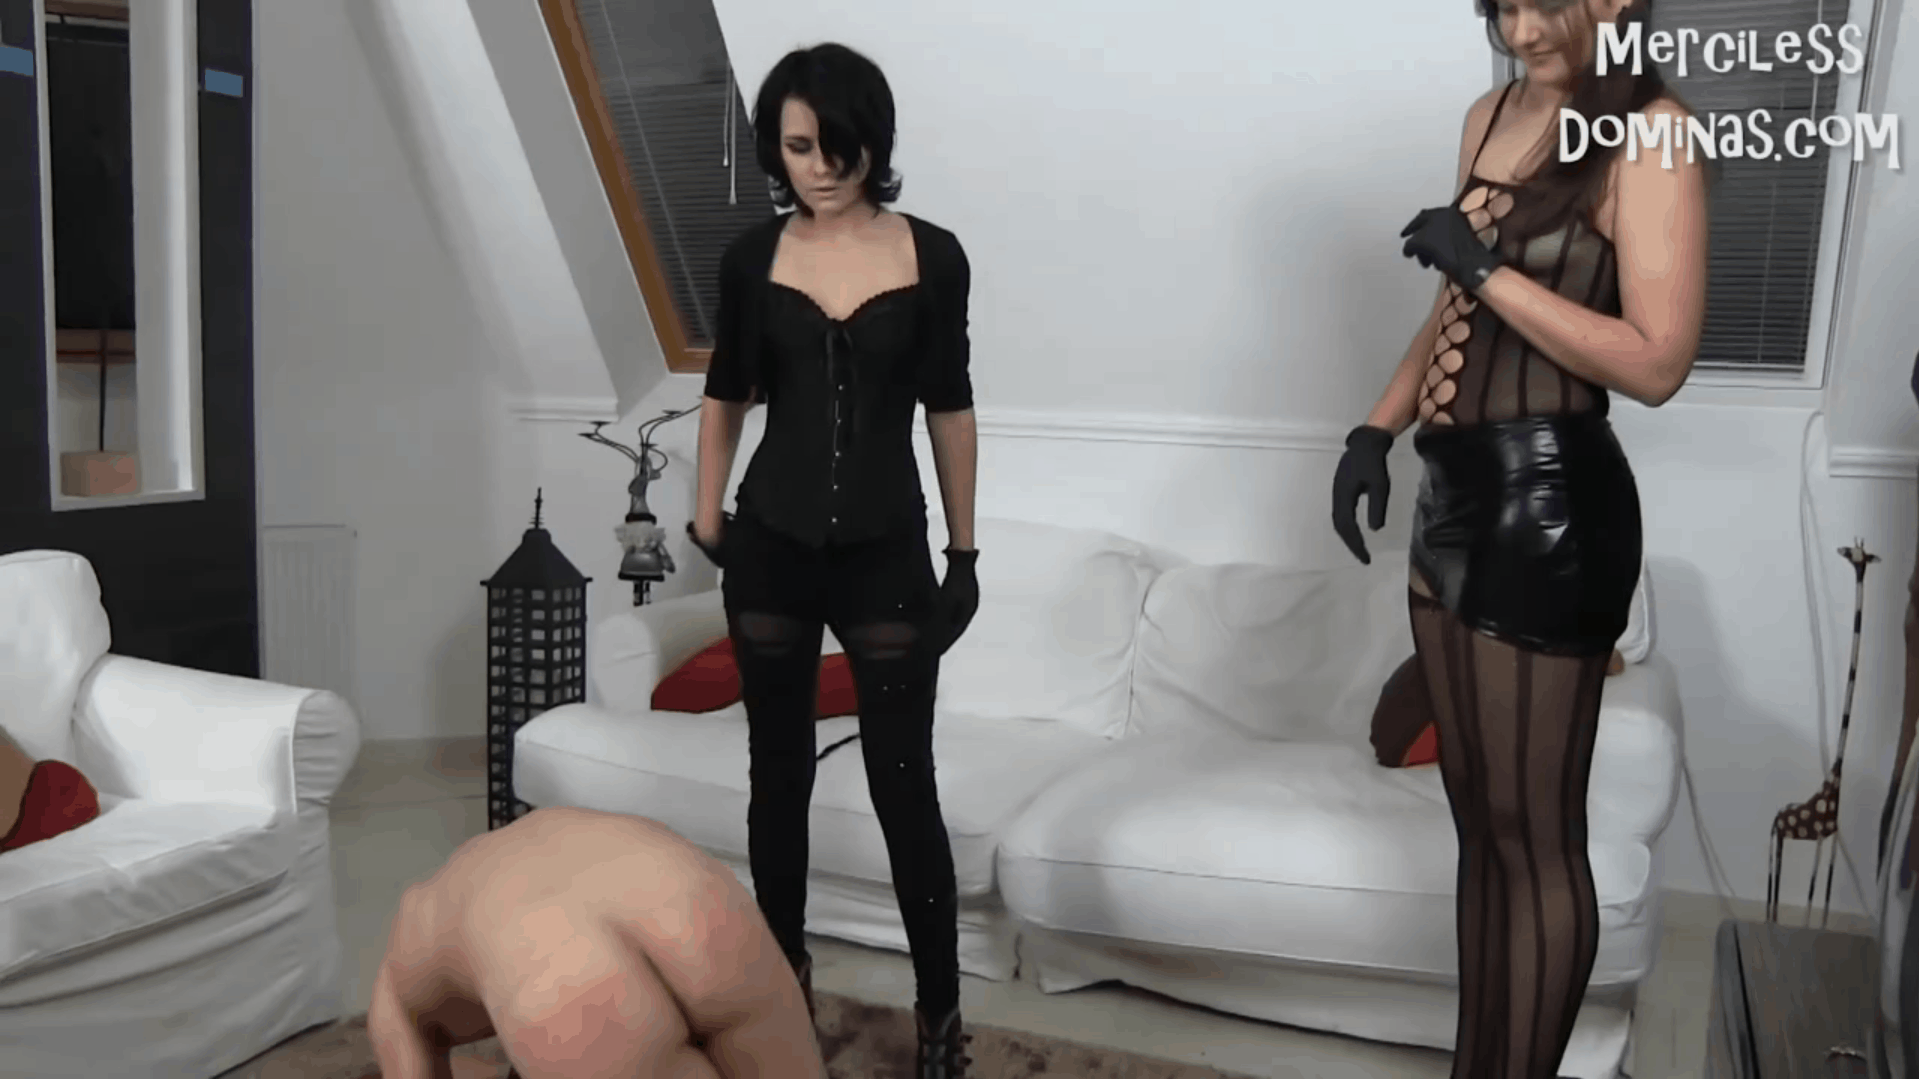 How To Use A Whip?